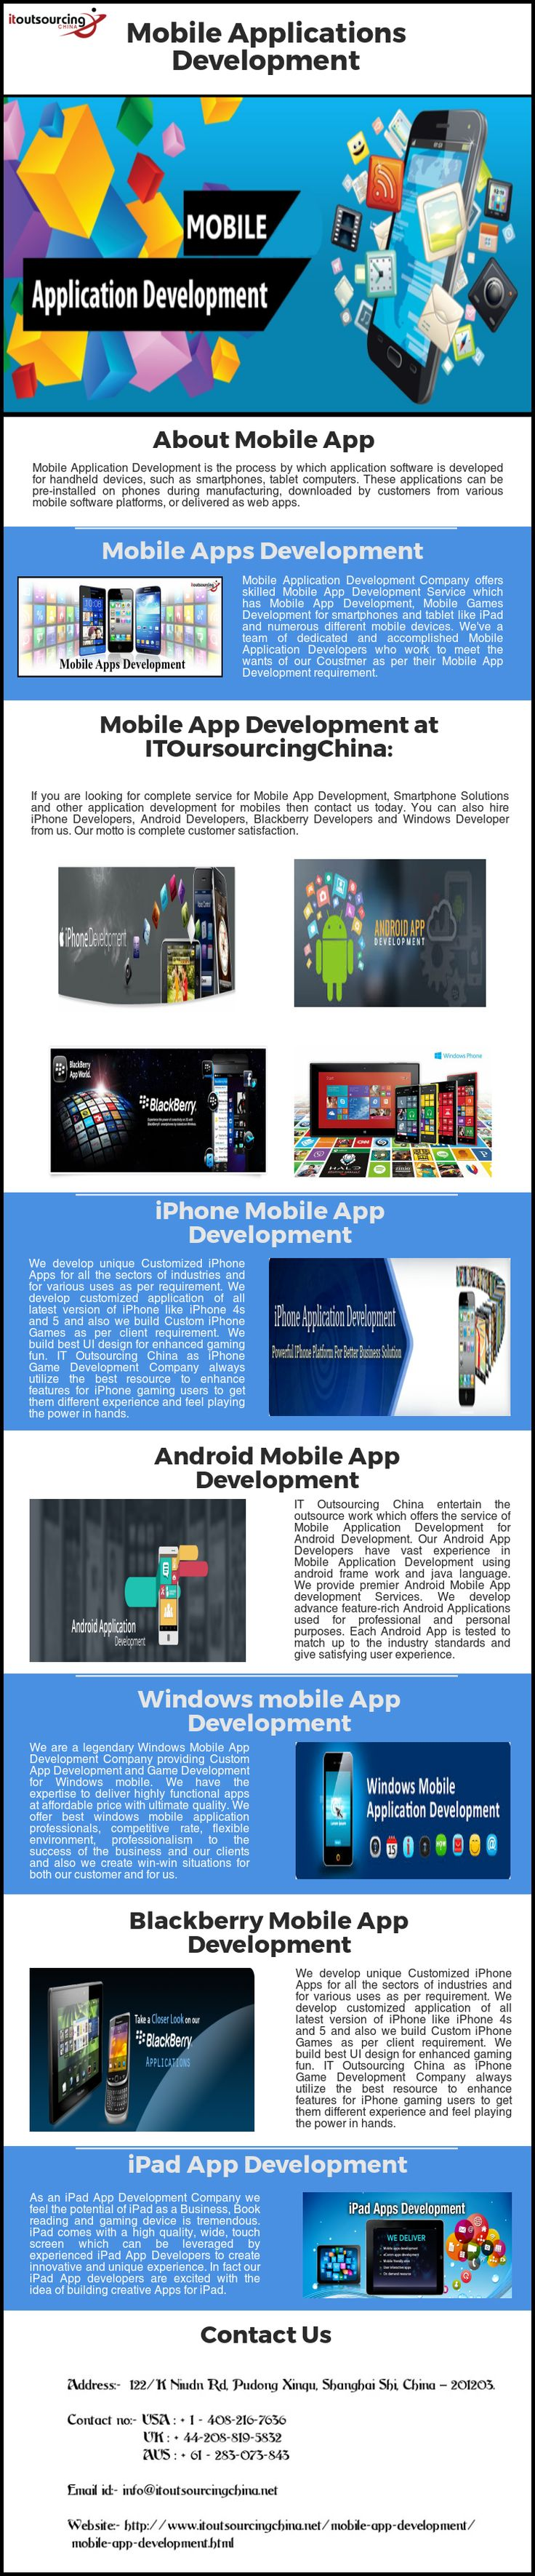 #Mobile #Application #Development #Company offers skilled Mobile #App Development Service which has Mobile App Development, Mobile Games Development for smartphones and tablet like iPad and numerous different mobile devices. We've a team of dedicated and accomplished Mobile Application Developers who work to meet the wants of our Coustmer as per their Mobile App Development requirement.